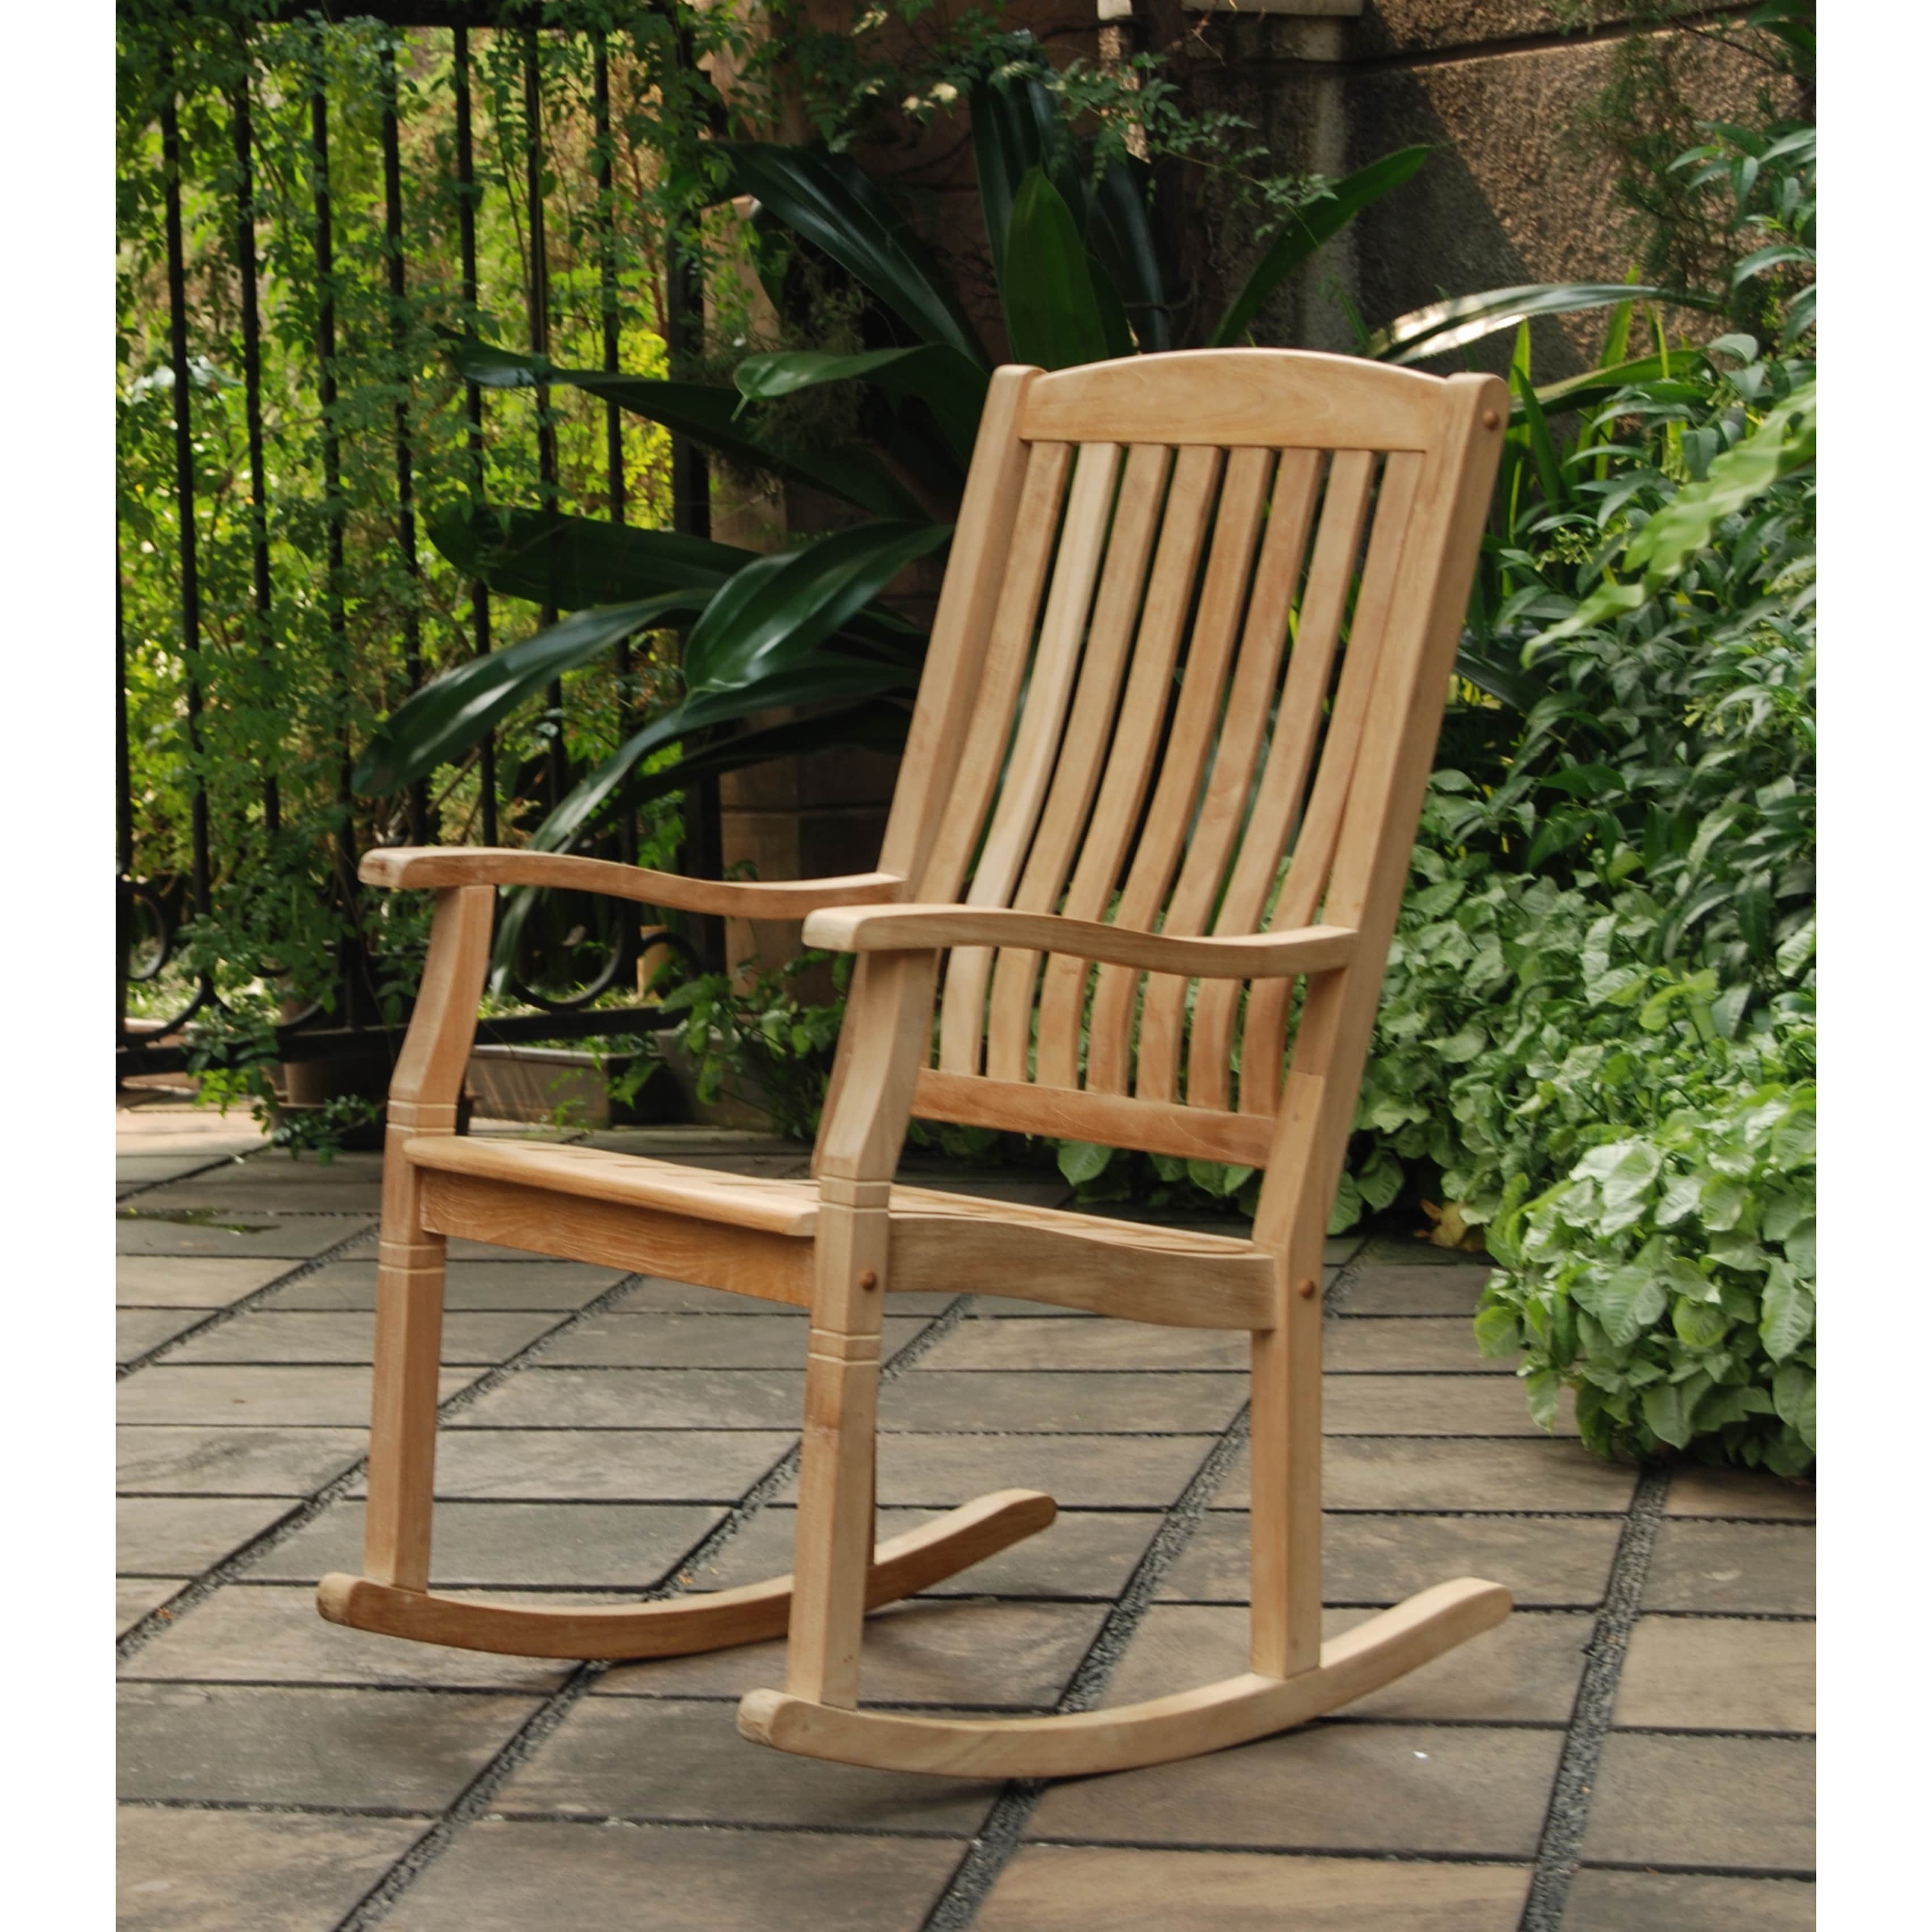 Teak Patio Rocking Chairs In Fashionable Shop Cambridge Casual Sherwood Natural Teak Porch Rocking Chair (View 15 of 20)